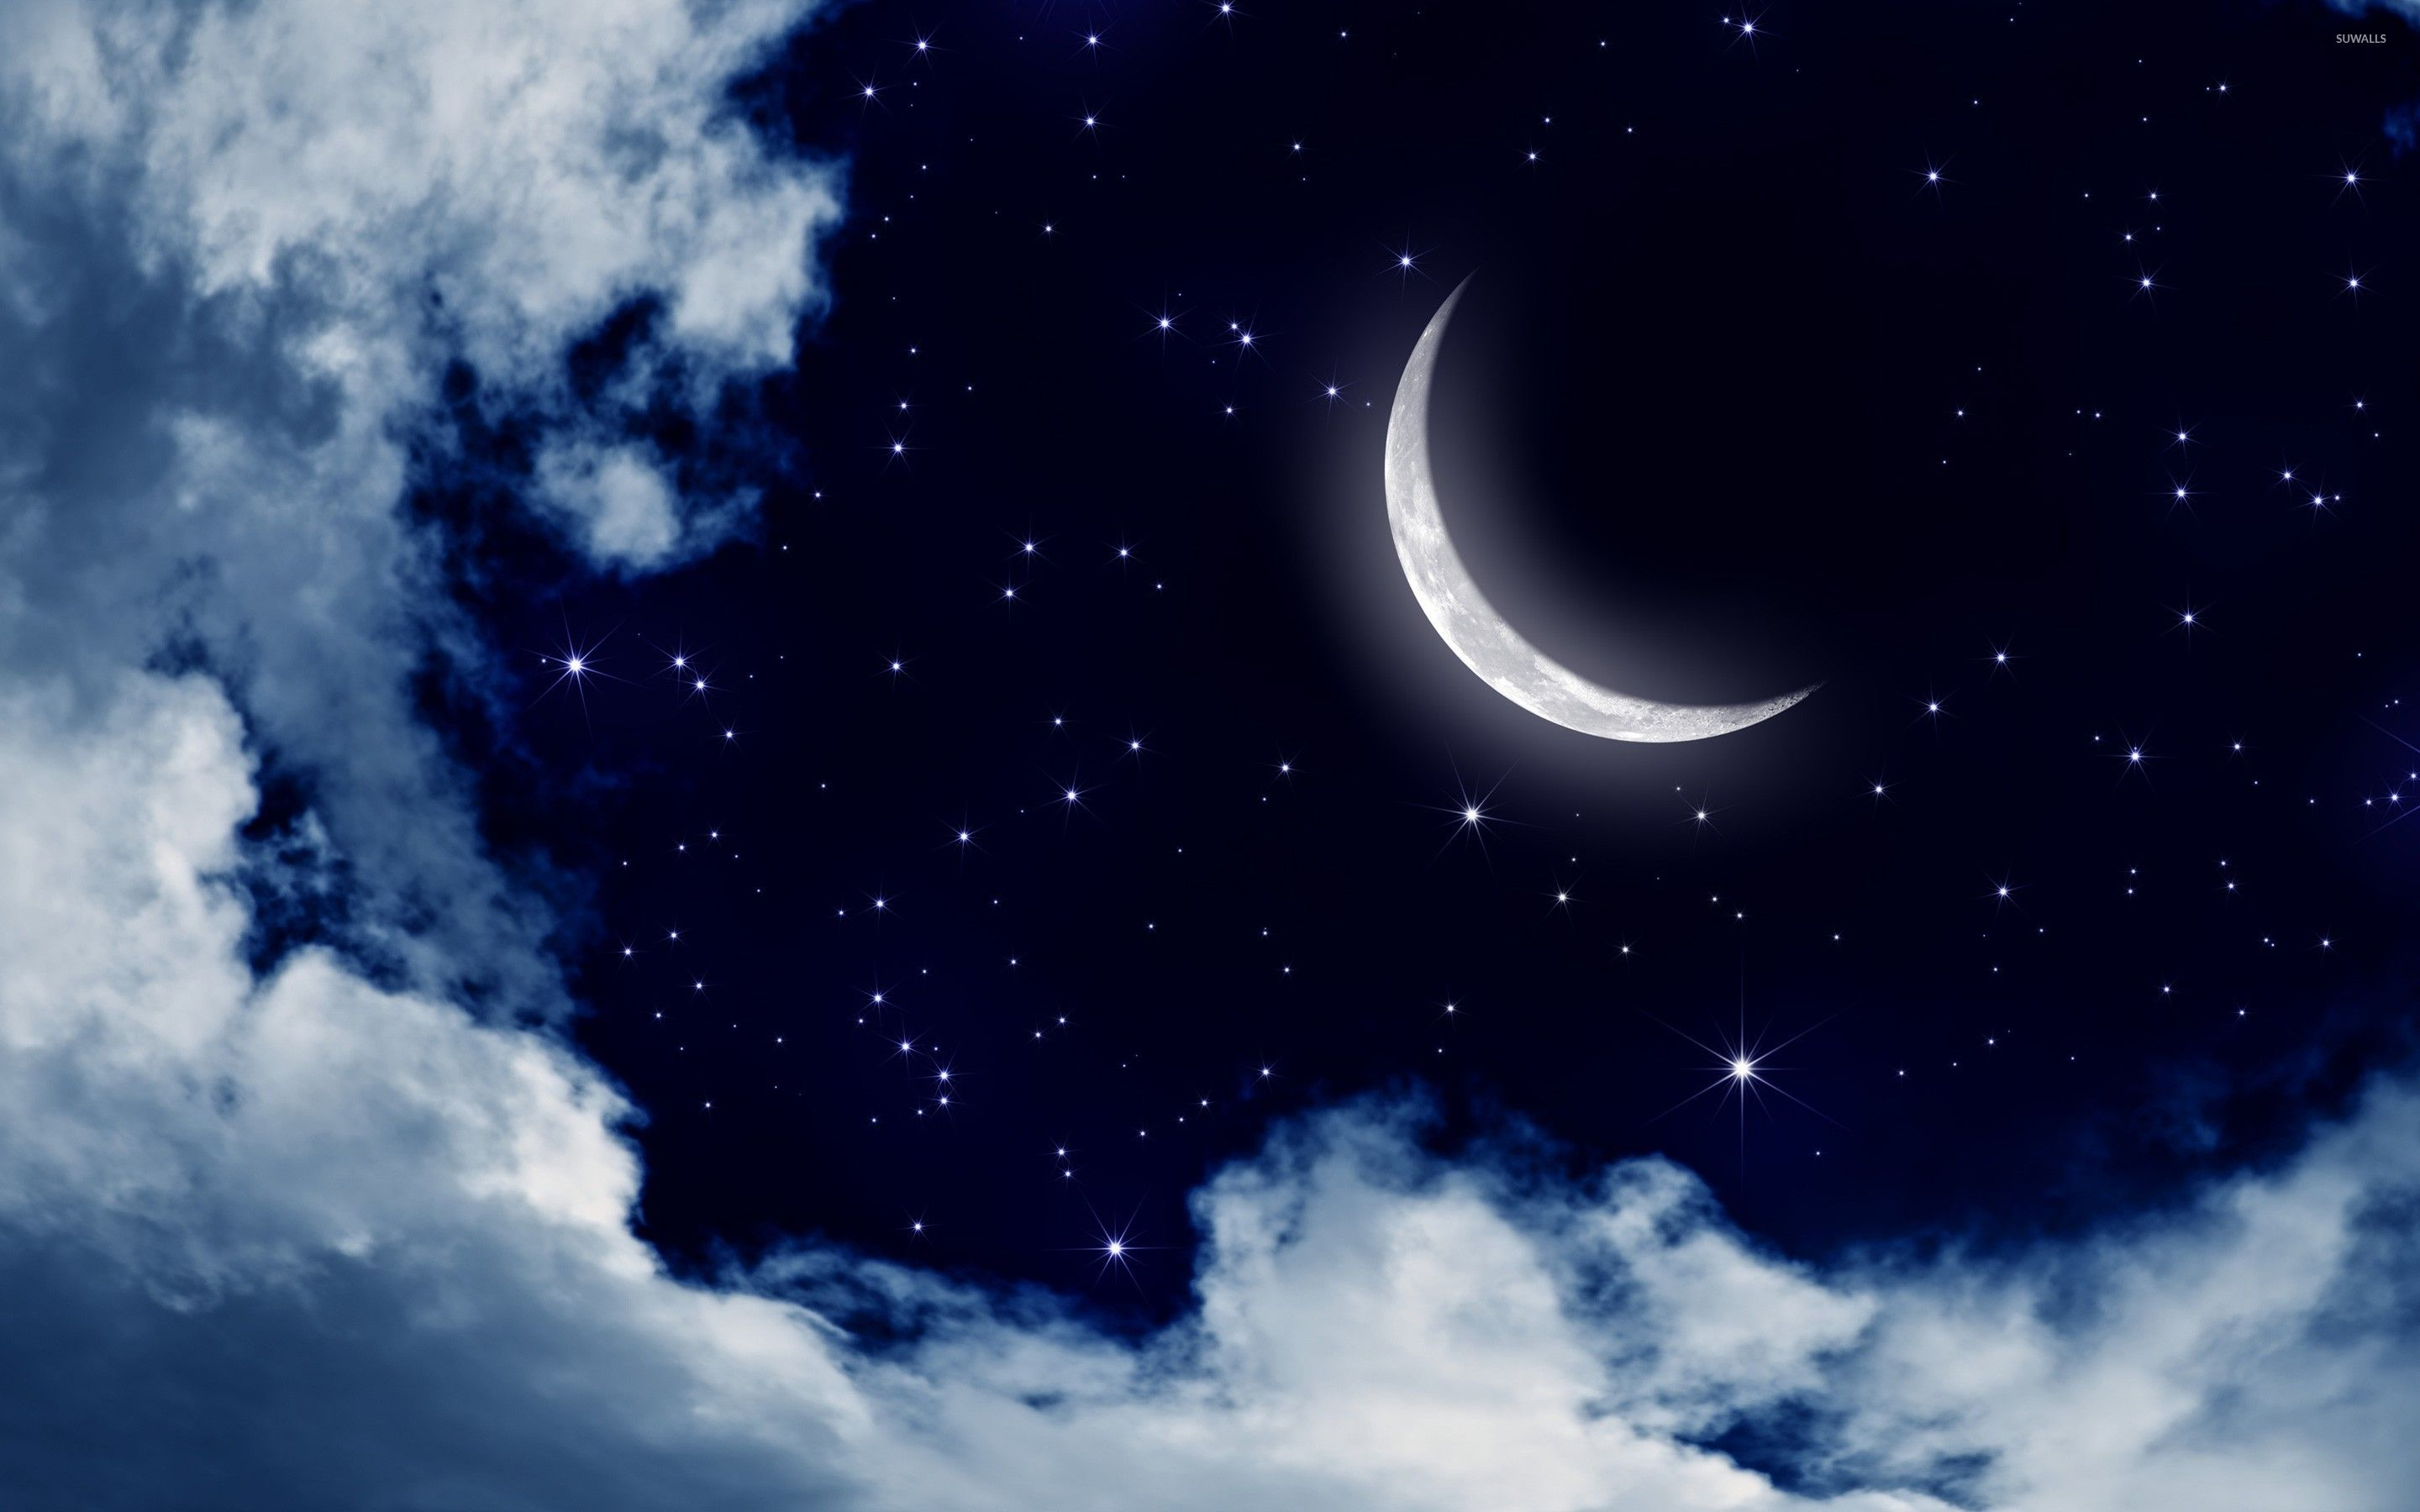 Wallpapers Of Stars And Moon With Images Moon And Stars